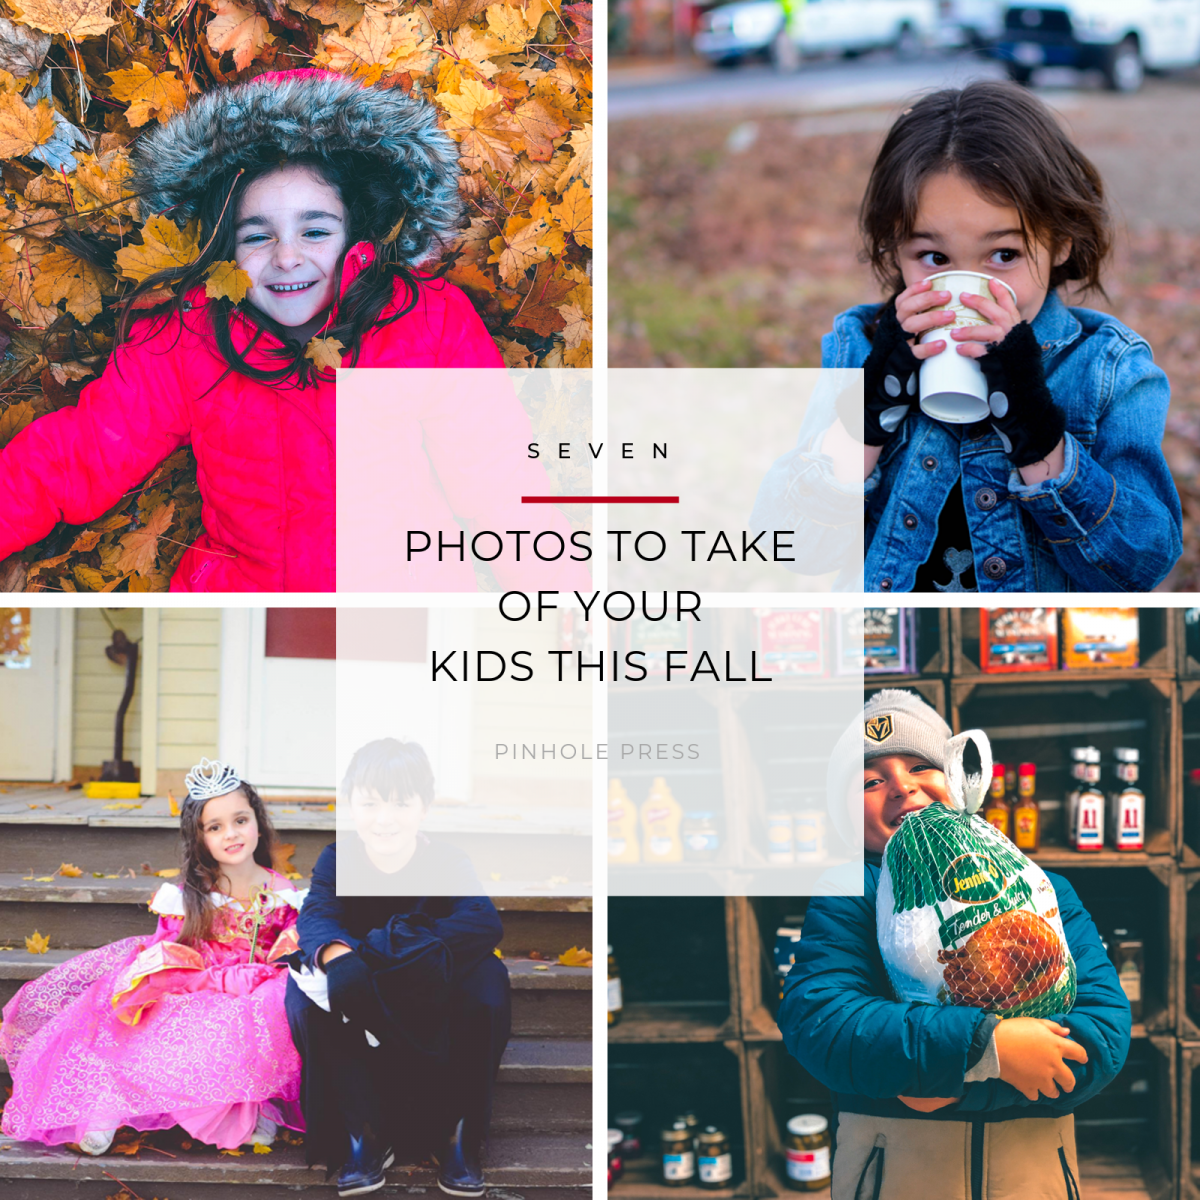 7 Photos to Take of Your Kids This Fall